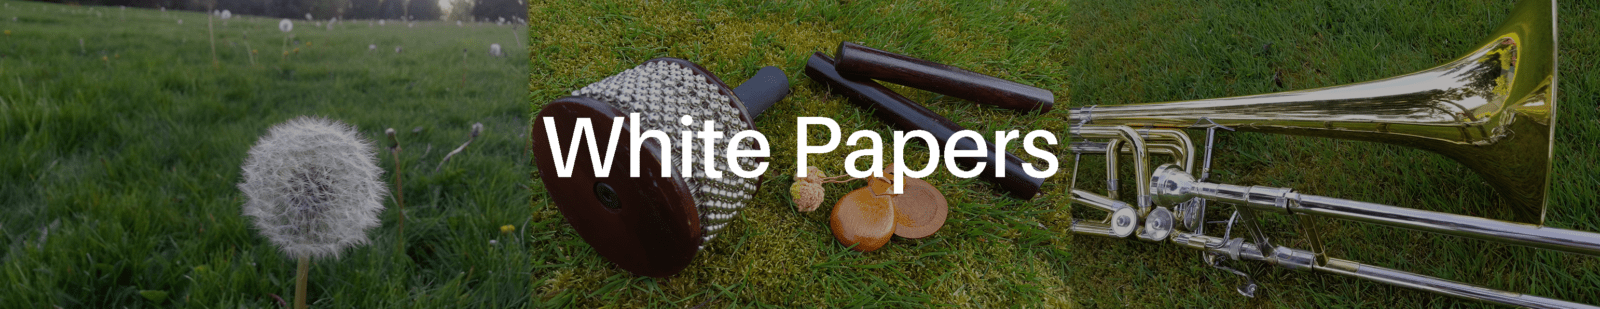 White Papers header